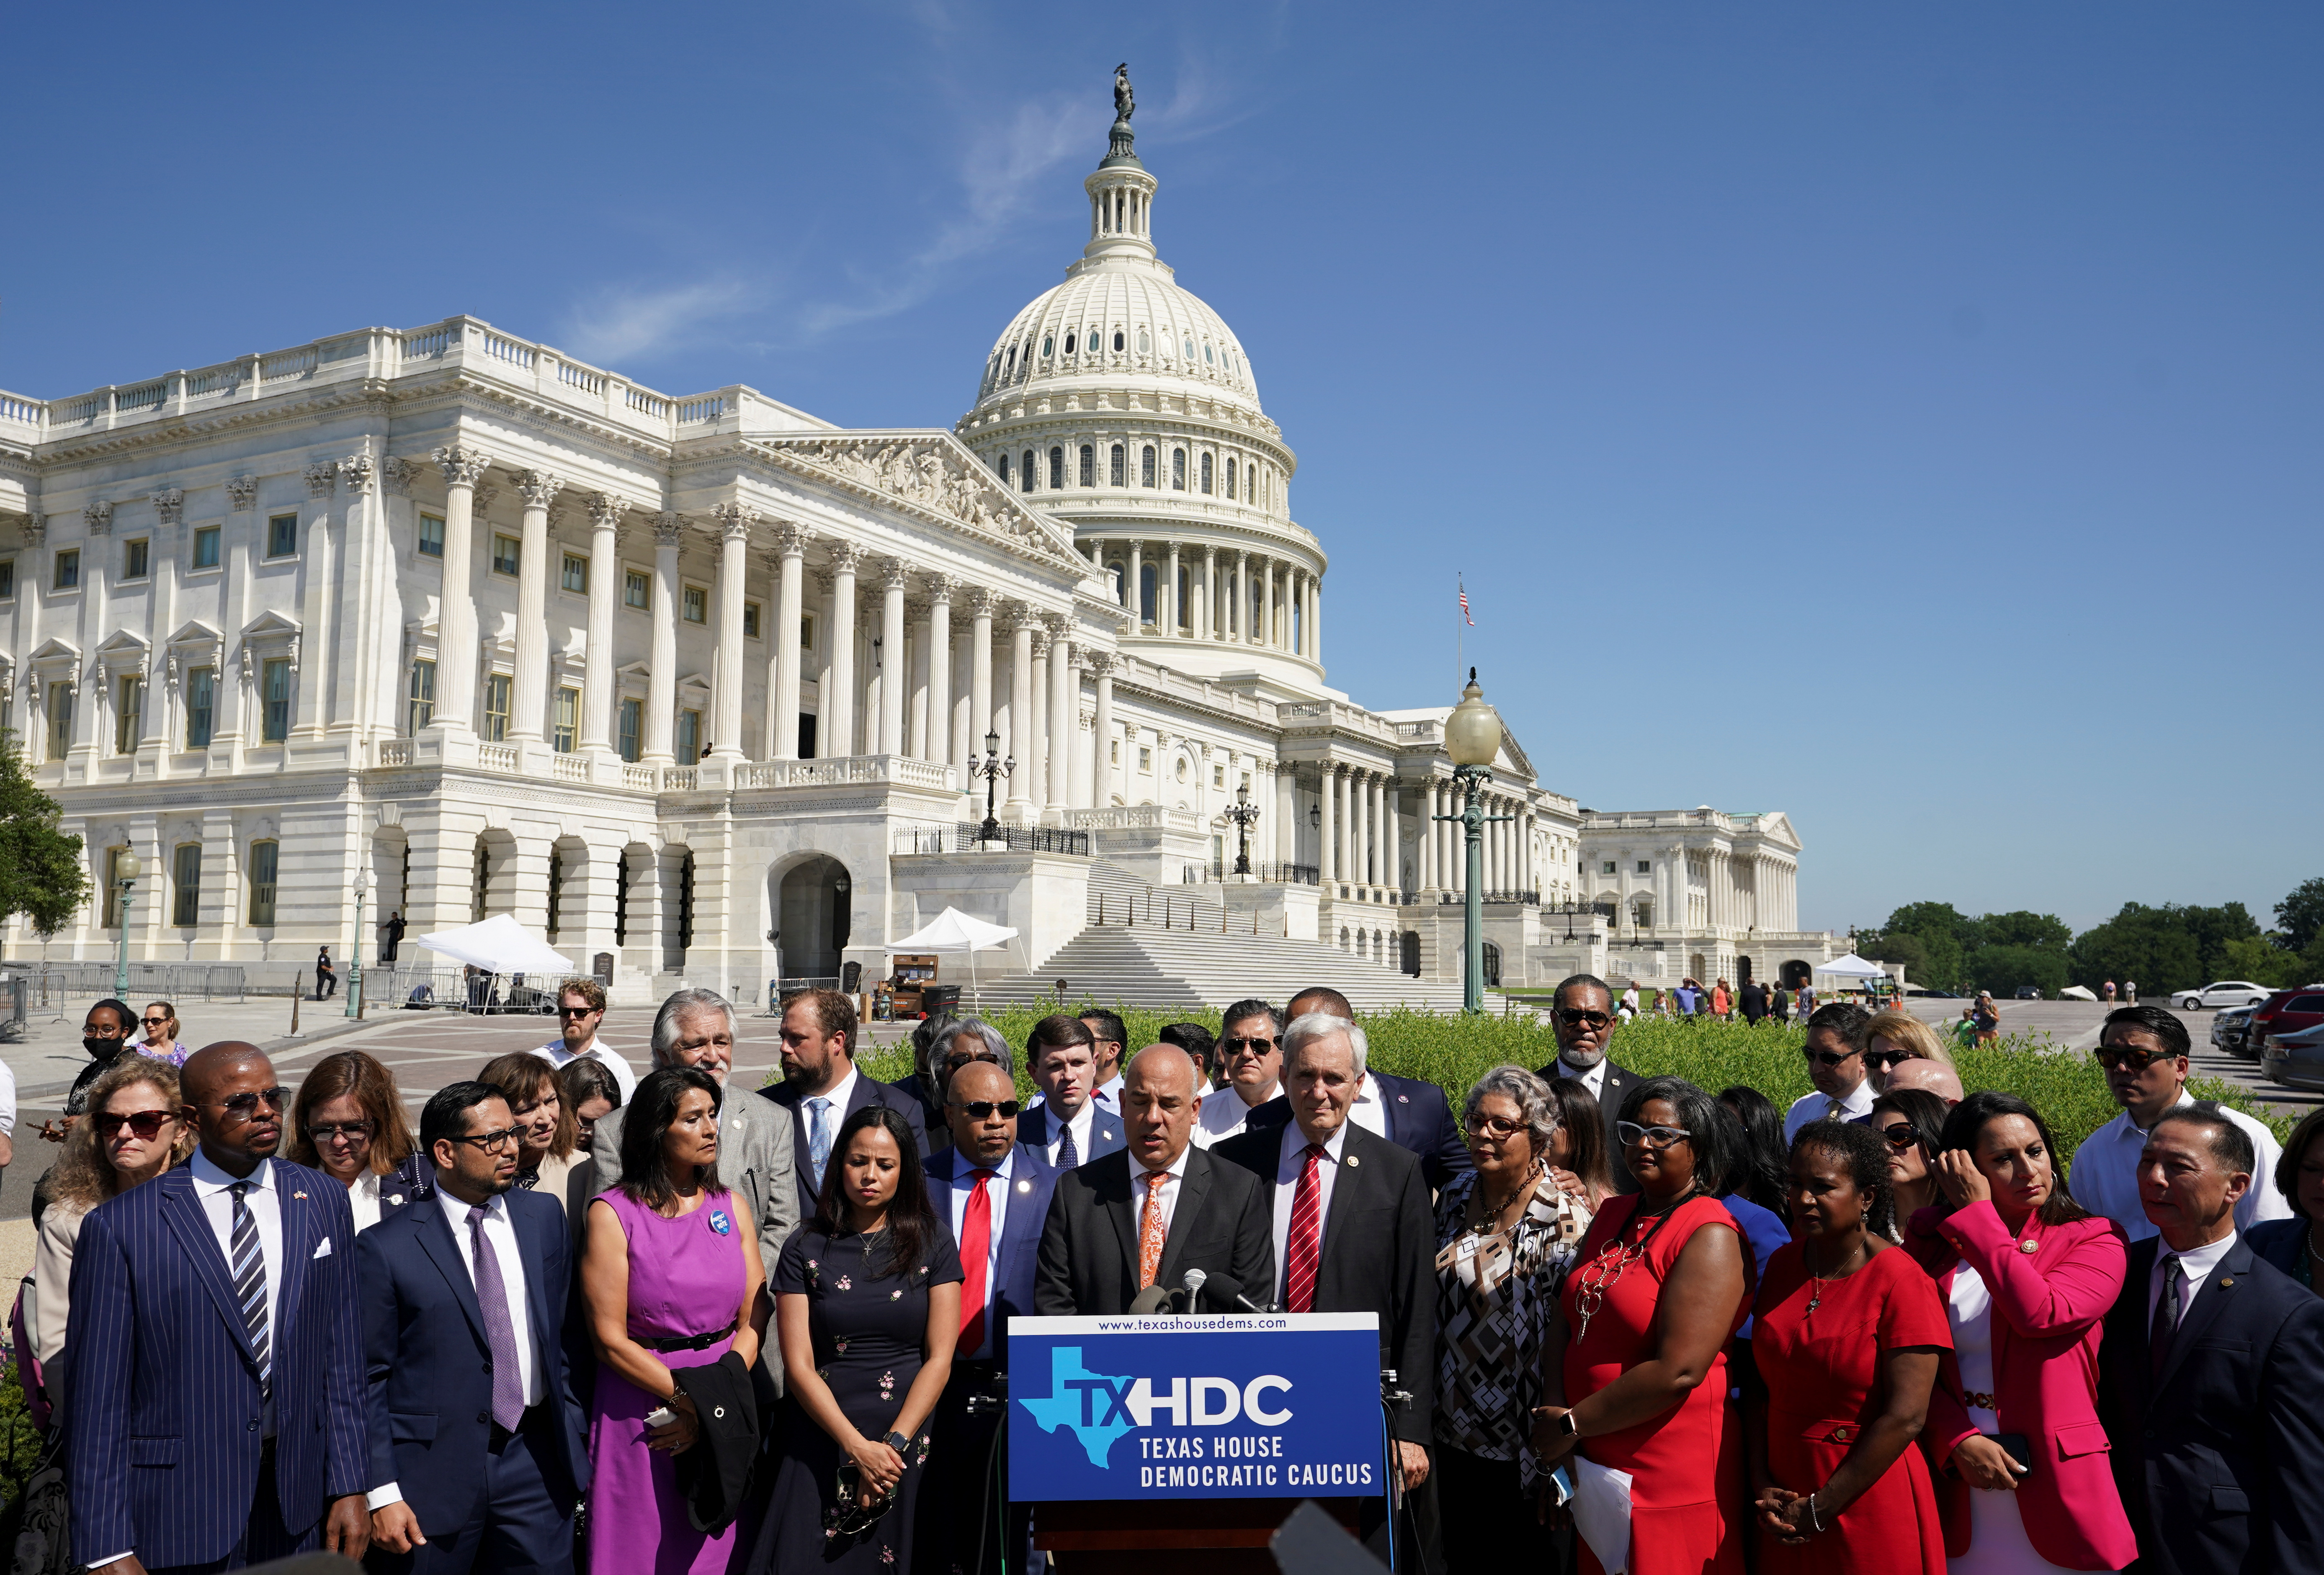 Representative Chris Turner (D-TX) joins other Democratic members of the Texas House of Representatives, who are boycotting a special session of the legislature in an effort to block Republican-backed voting restrictions, as they speak in front of the U.S. Capitol in Washington, U.S., July 13, 2021. REUTERS/Kevin Lamarque